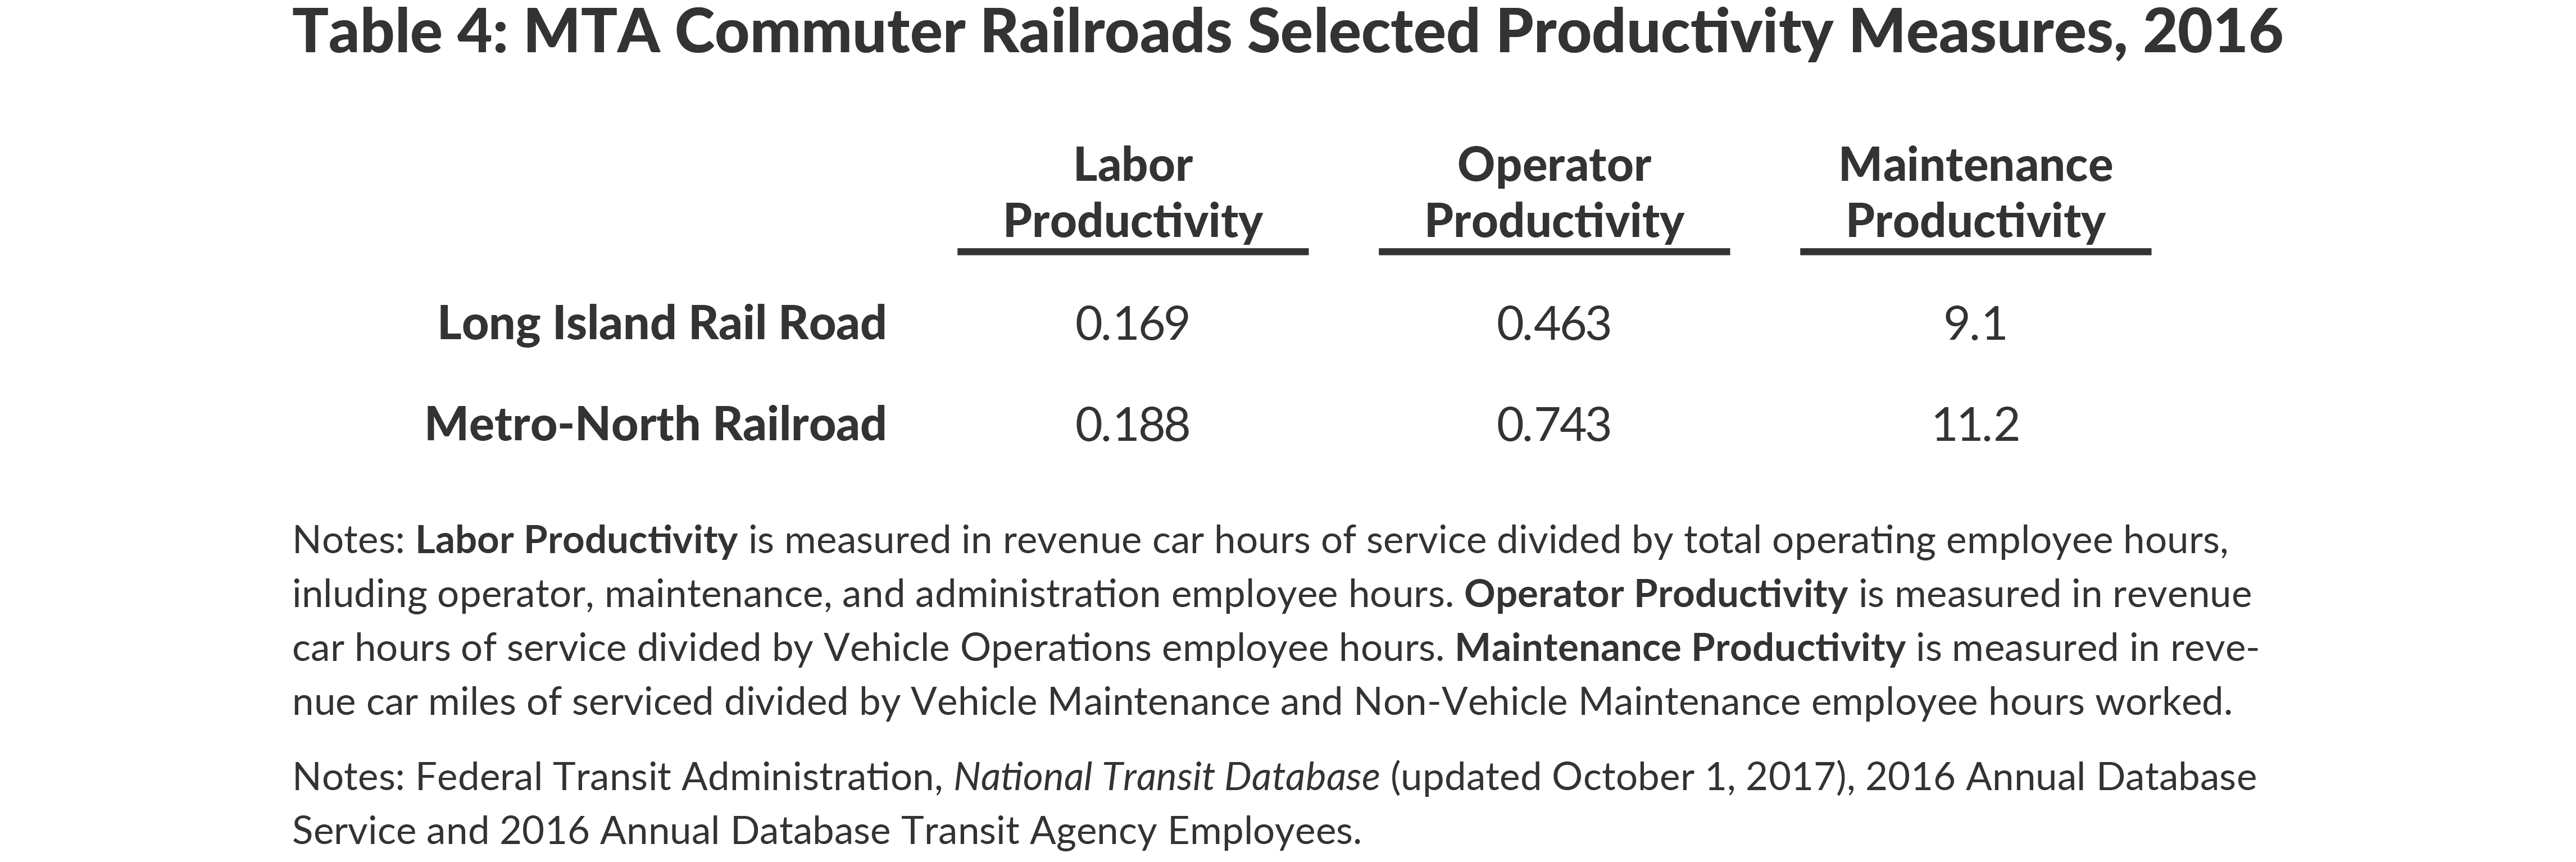 Table 4: MTA Commuter Railroads Selected Productivity Measures, 2016